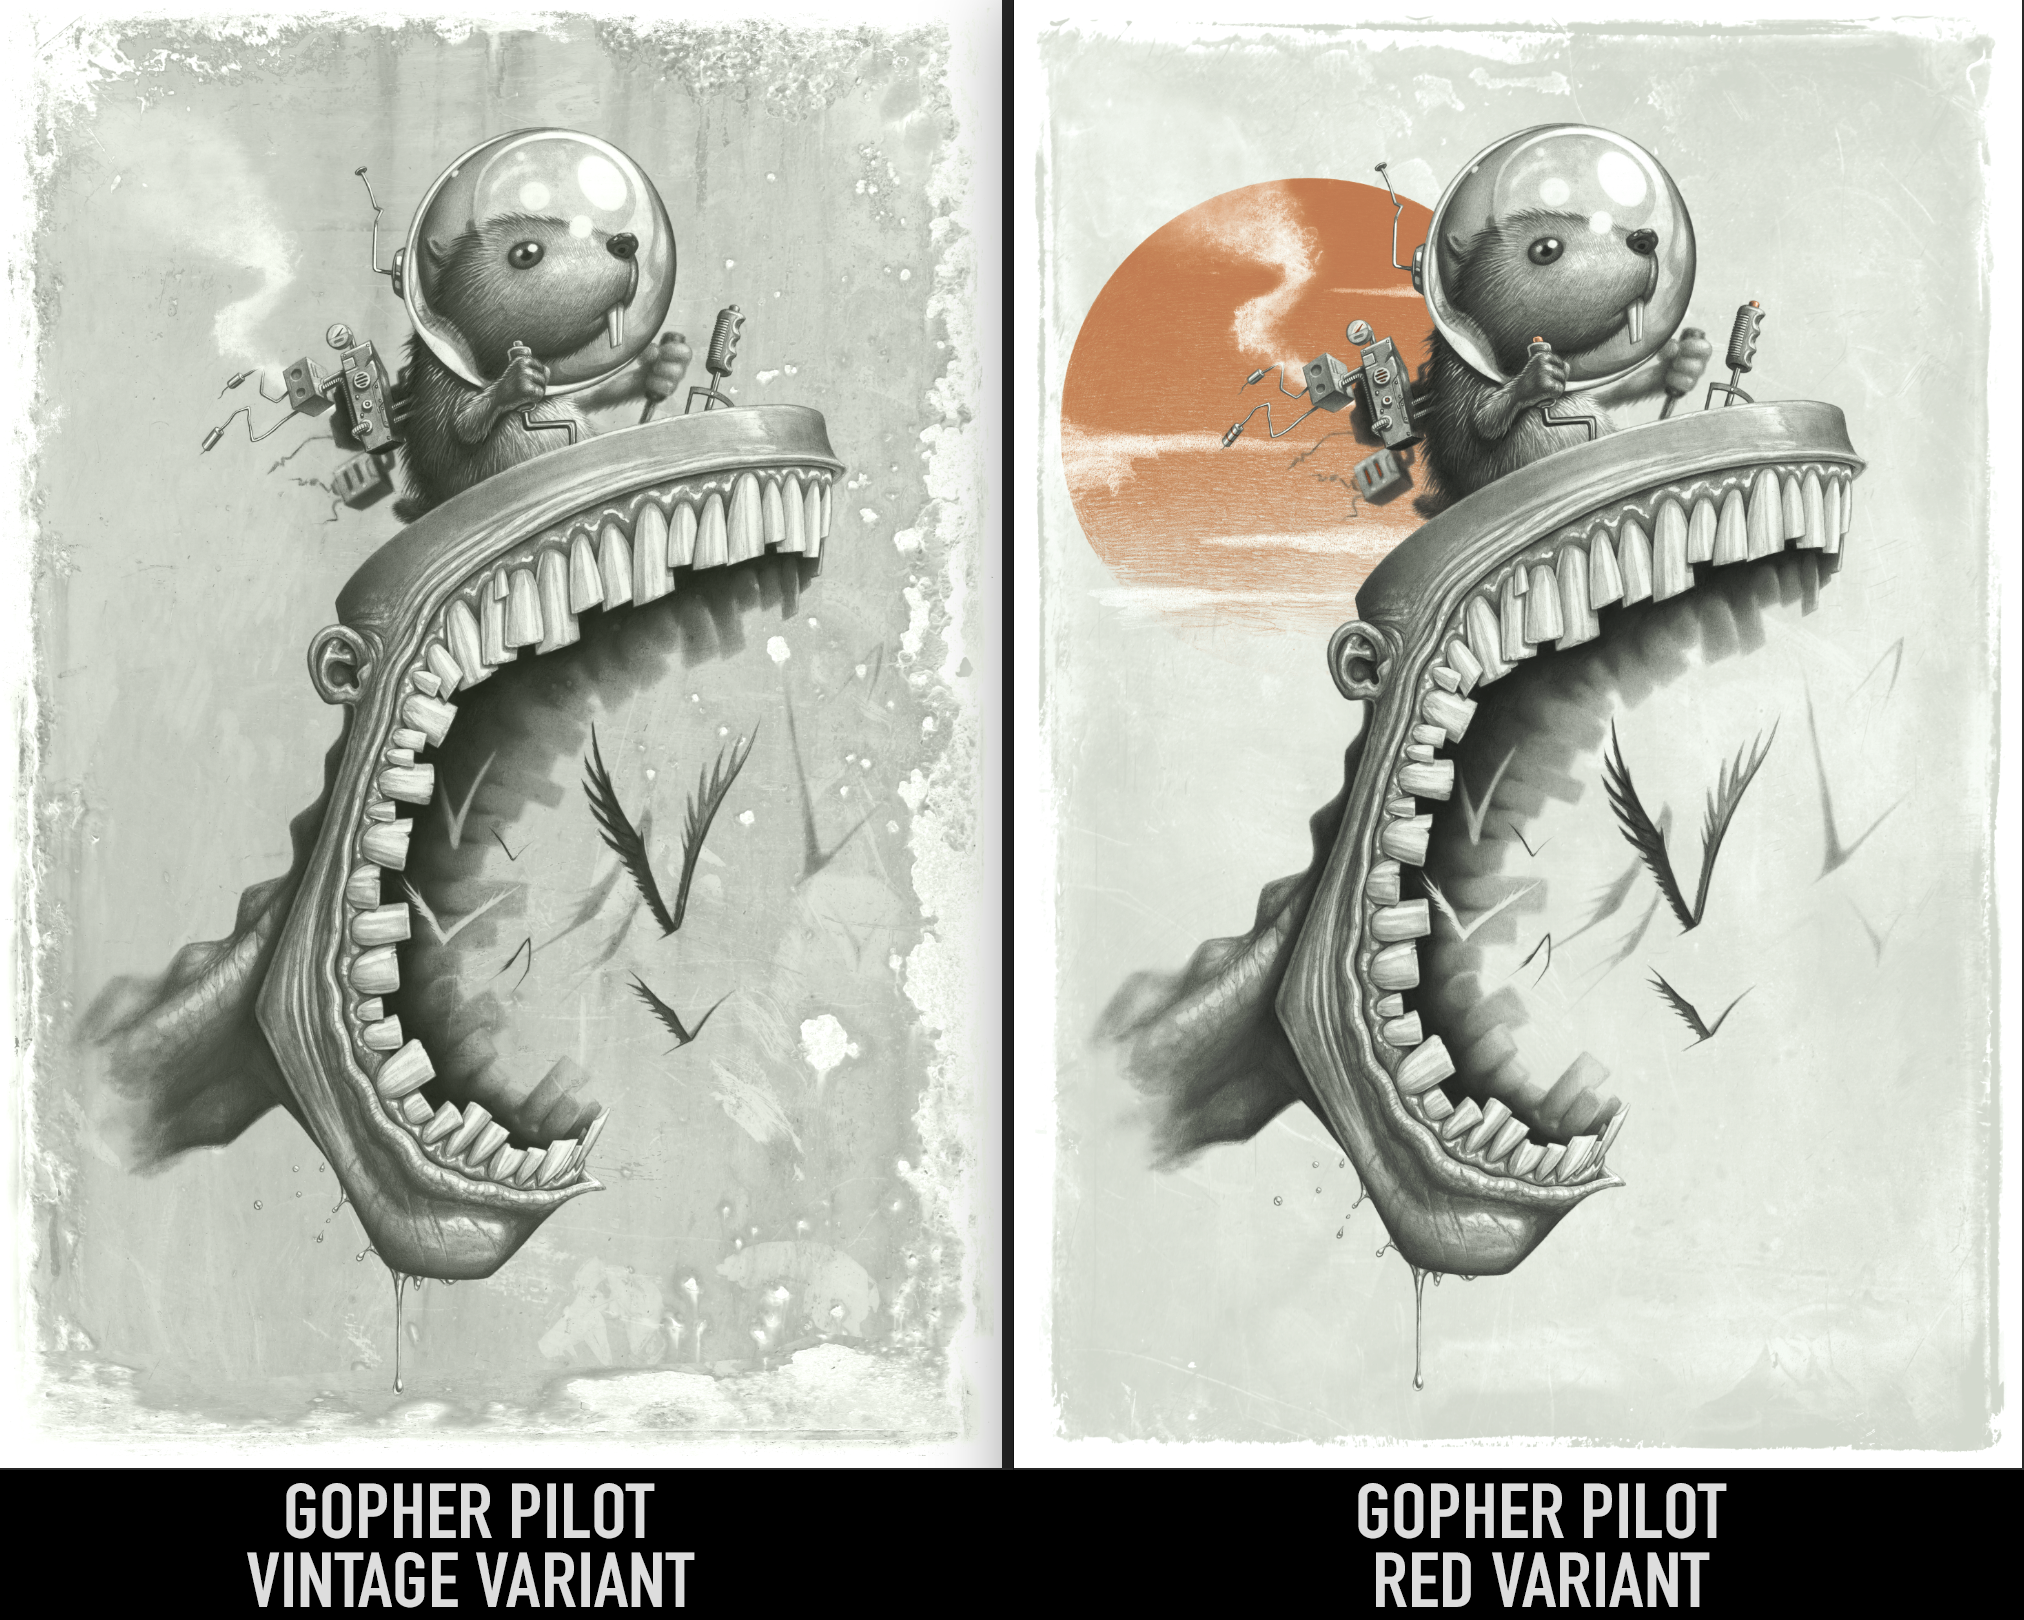 limited Gopher Pilot Variants - Limited Edition of 29 @ $145.00Deckle edge 19